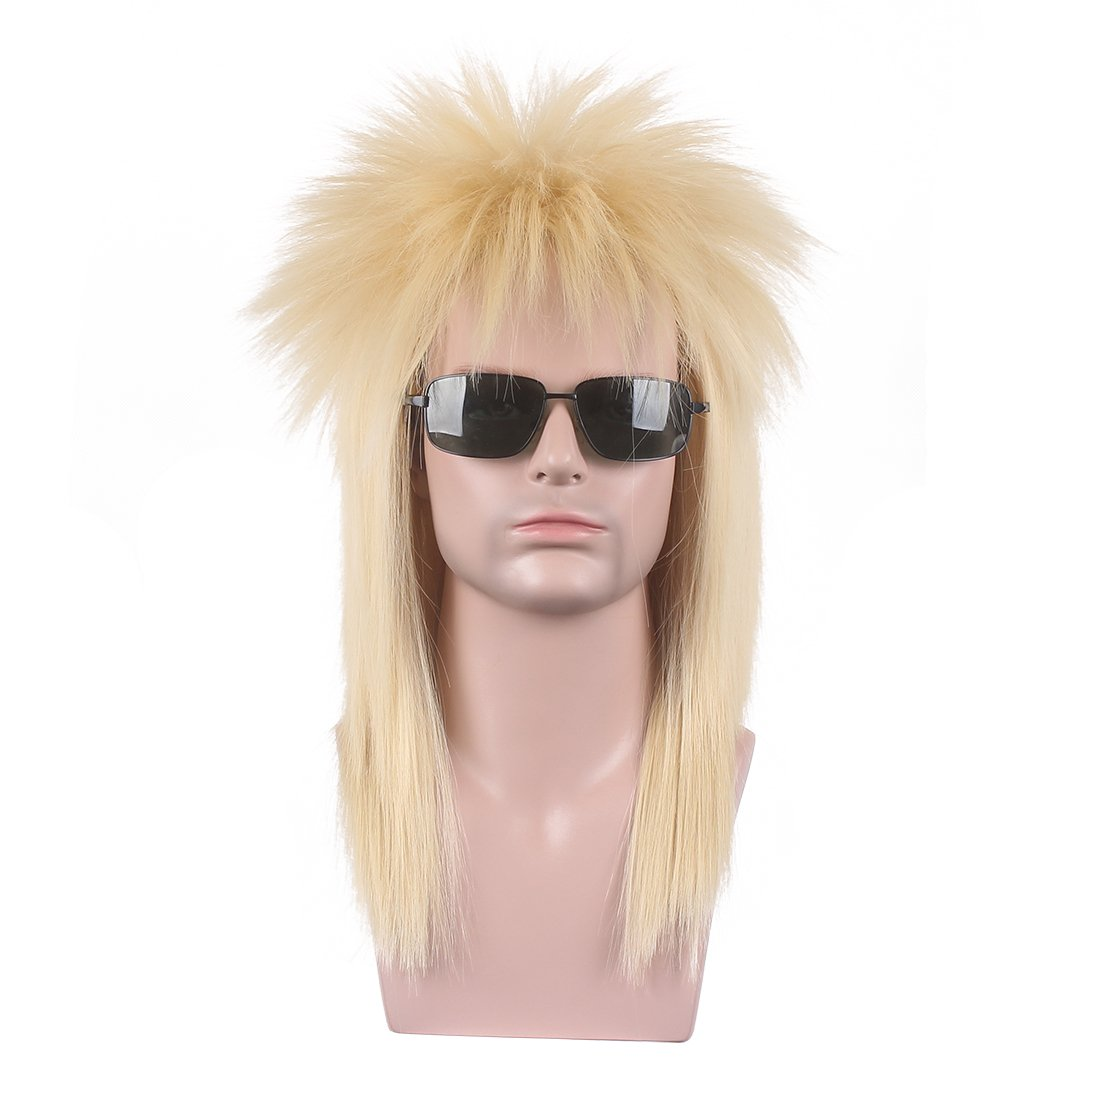 wildcos 80s Long Blonde Straight Cosplay Wig for Men